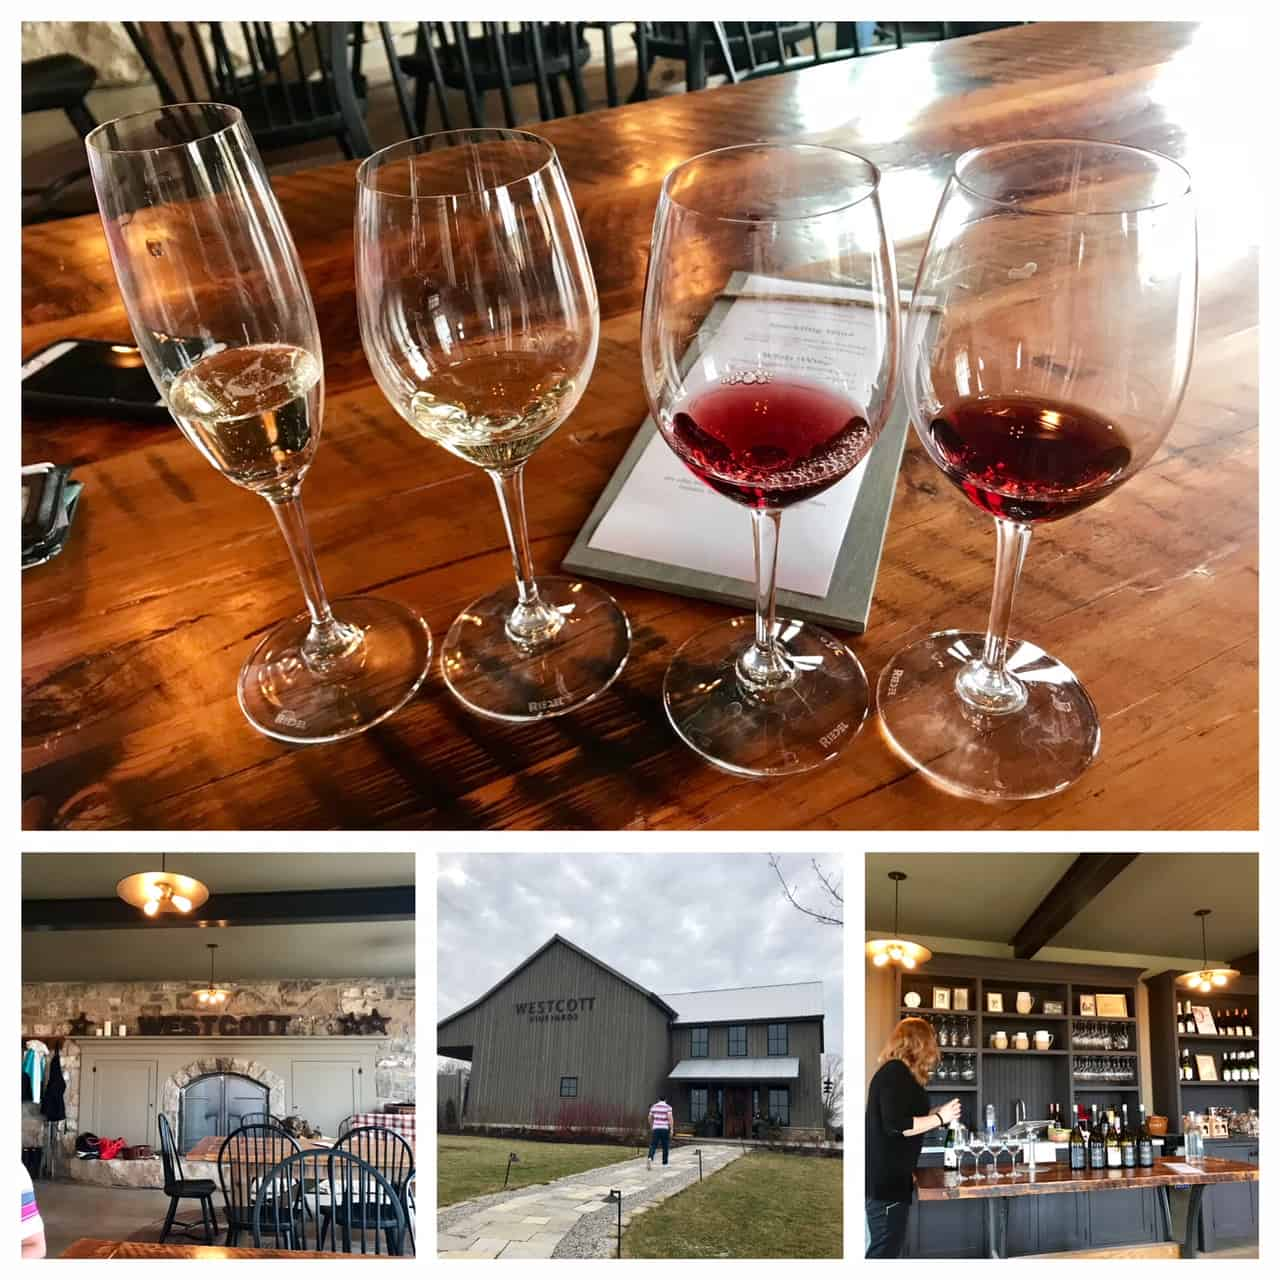 Collage of images from Westcott Winery